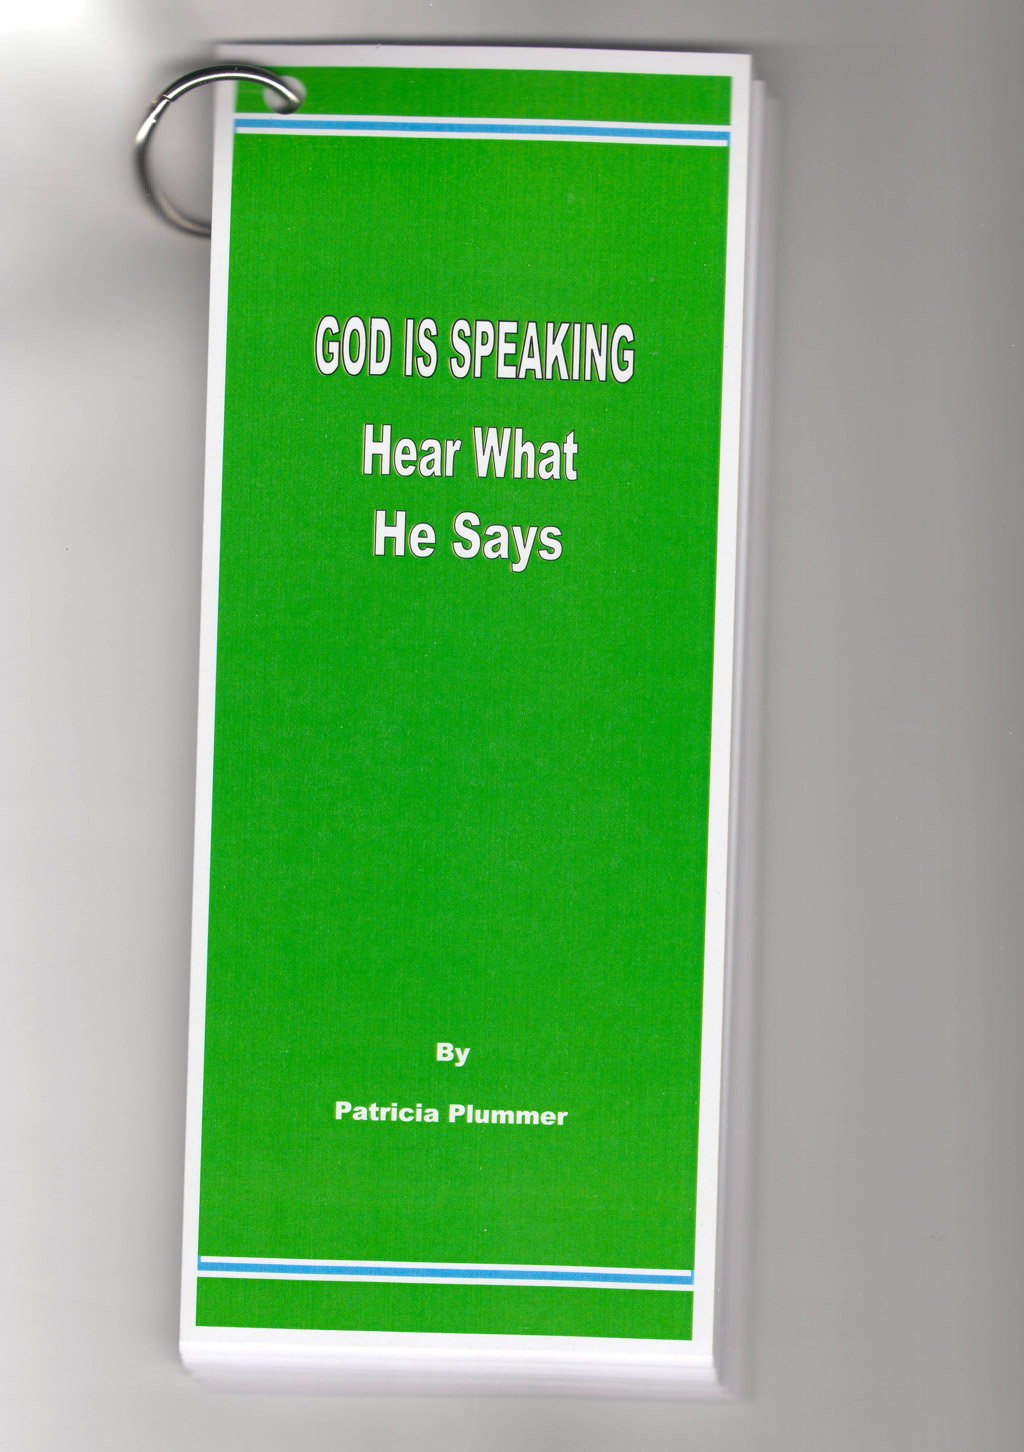 God is Speaking, Hear What He Says